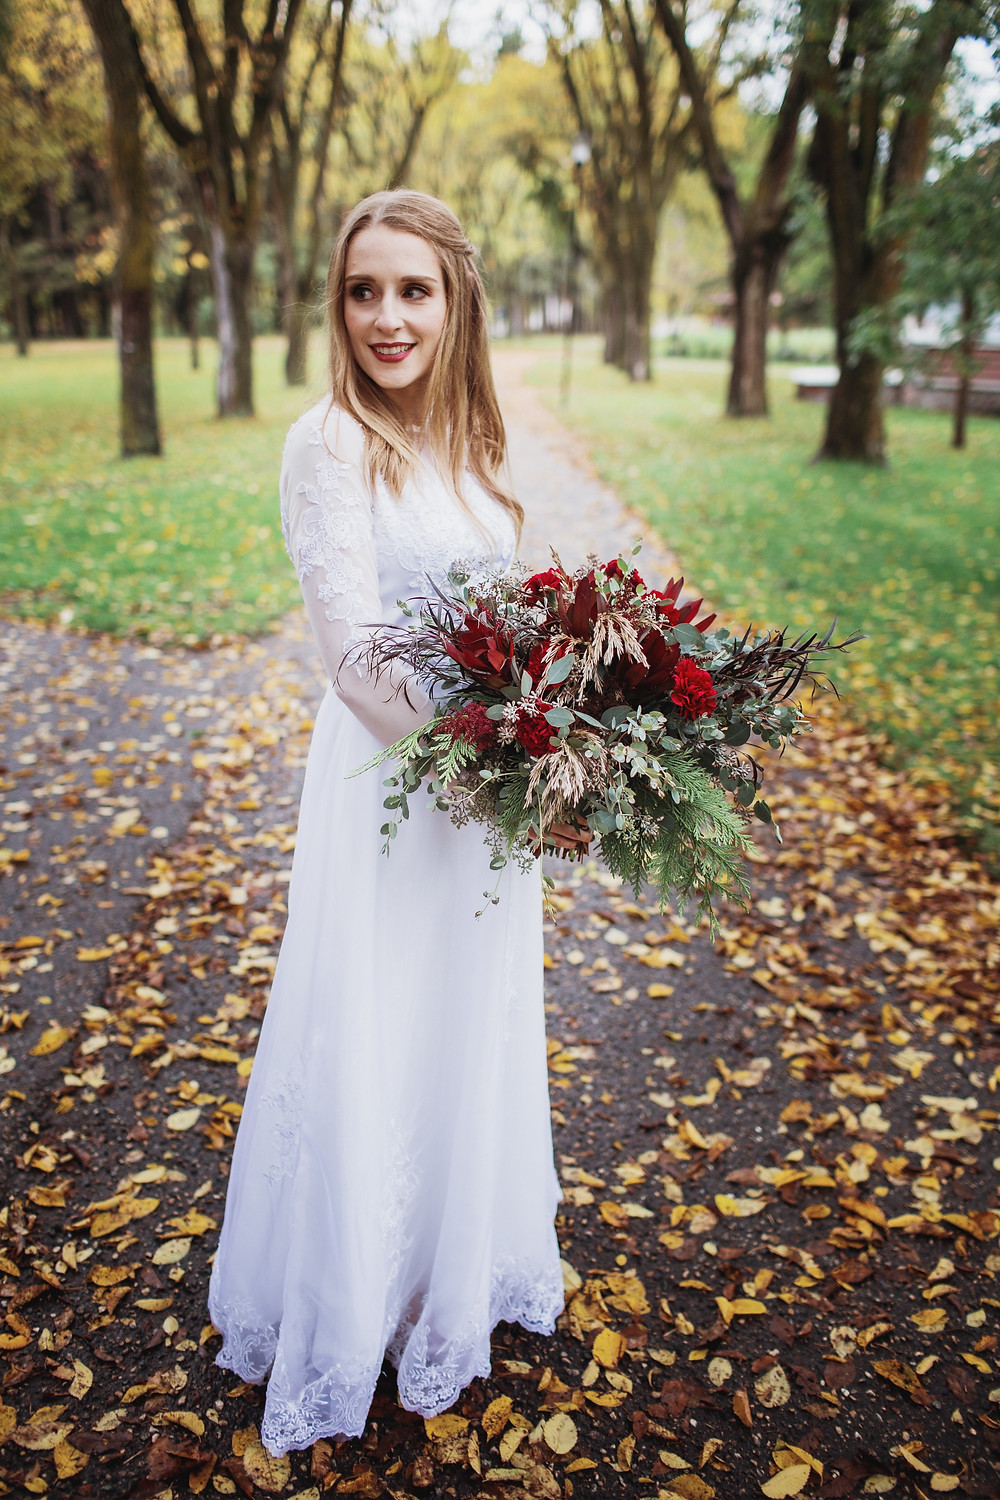 Fall bridal inspiration.Bride wears her mother's dress, holding a hearty fall bouquet.